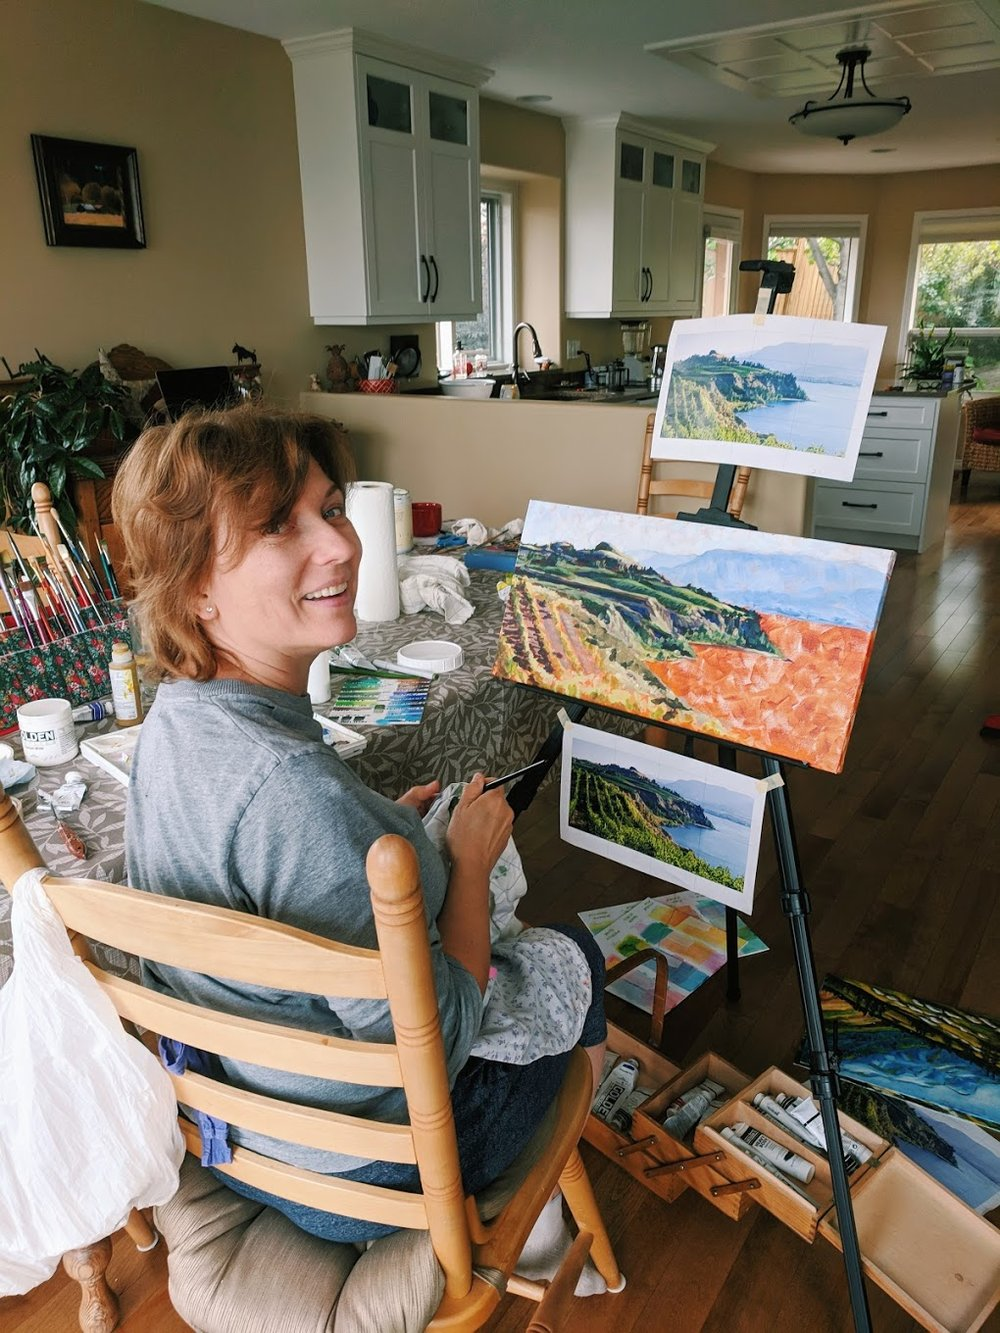 My mom working on her painting of a vineyard in the Okanagan Valley.